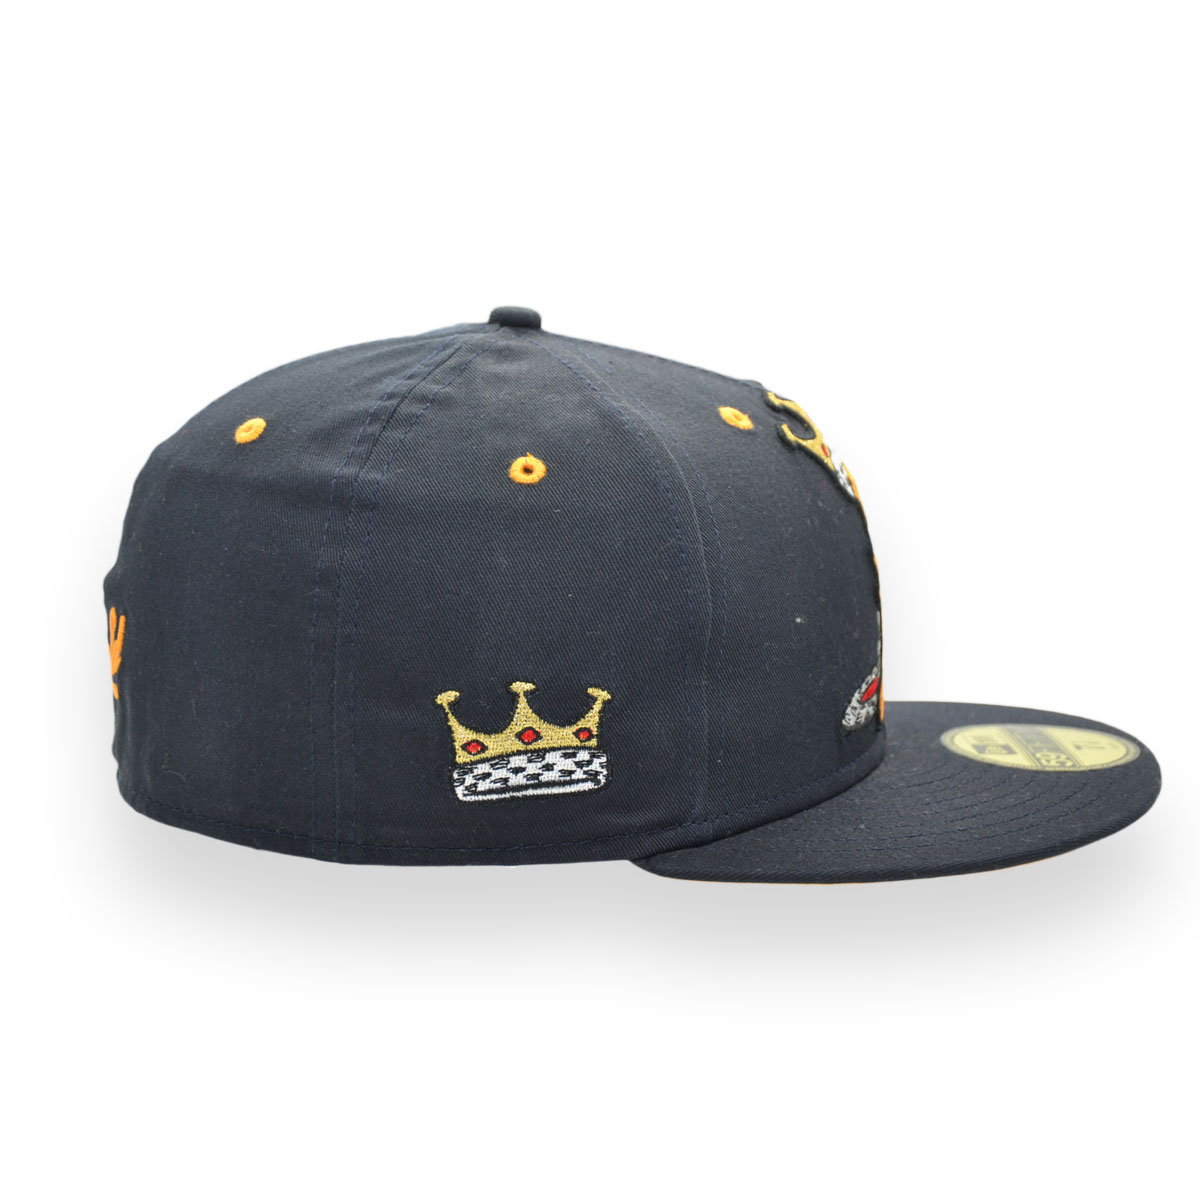 release date d93a7 cc043 ... coupon code for new era garfield king 59fifty navy fitted cap 7 1 8  56.8cm